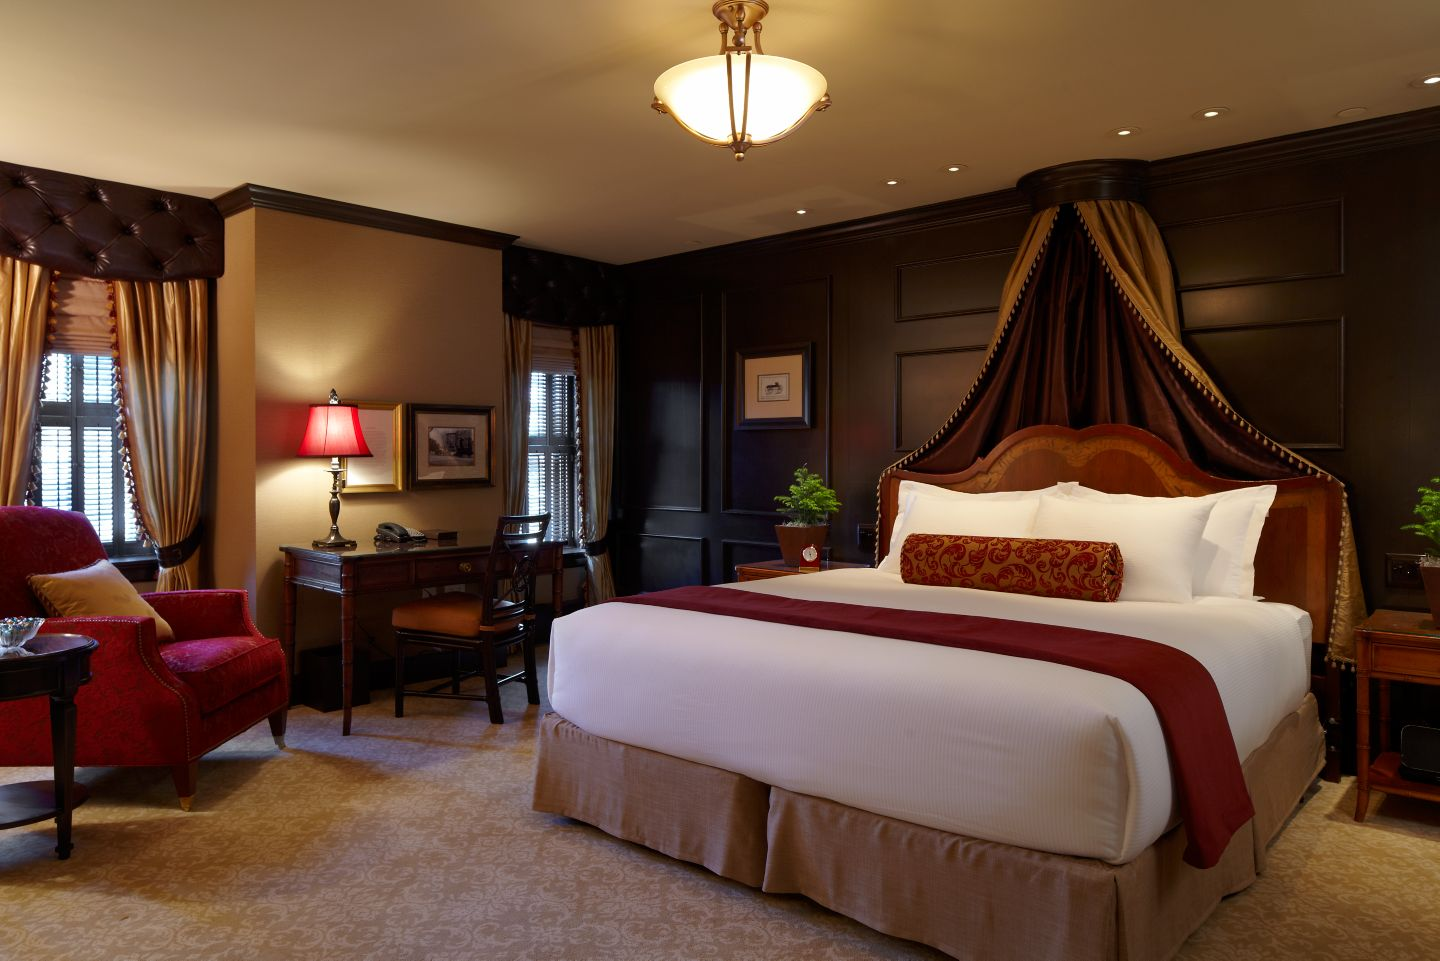 This is the Heritage Room at the Carriage House